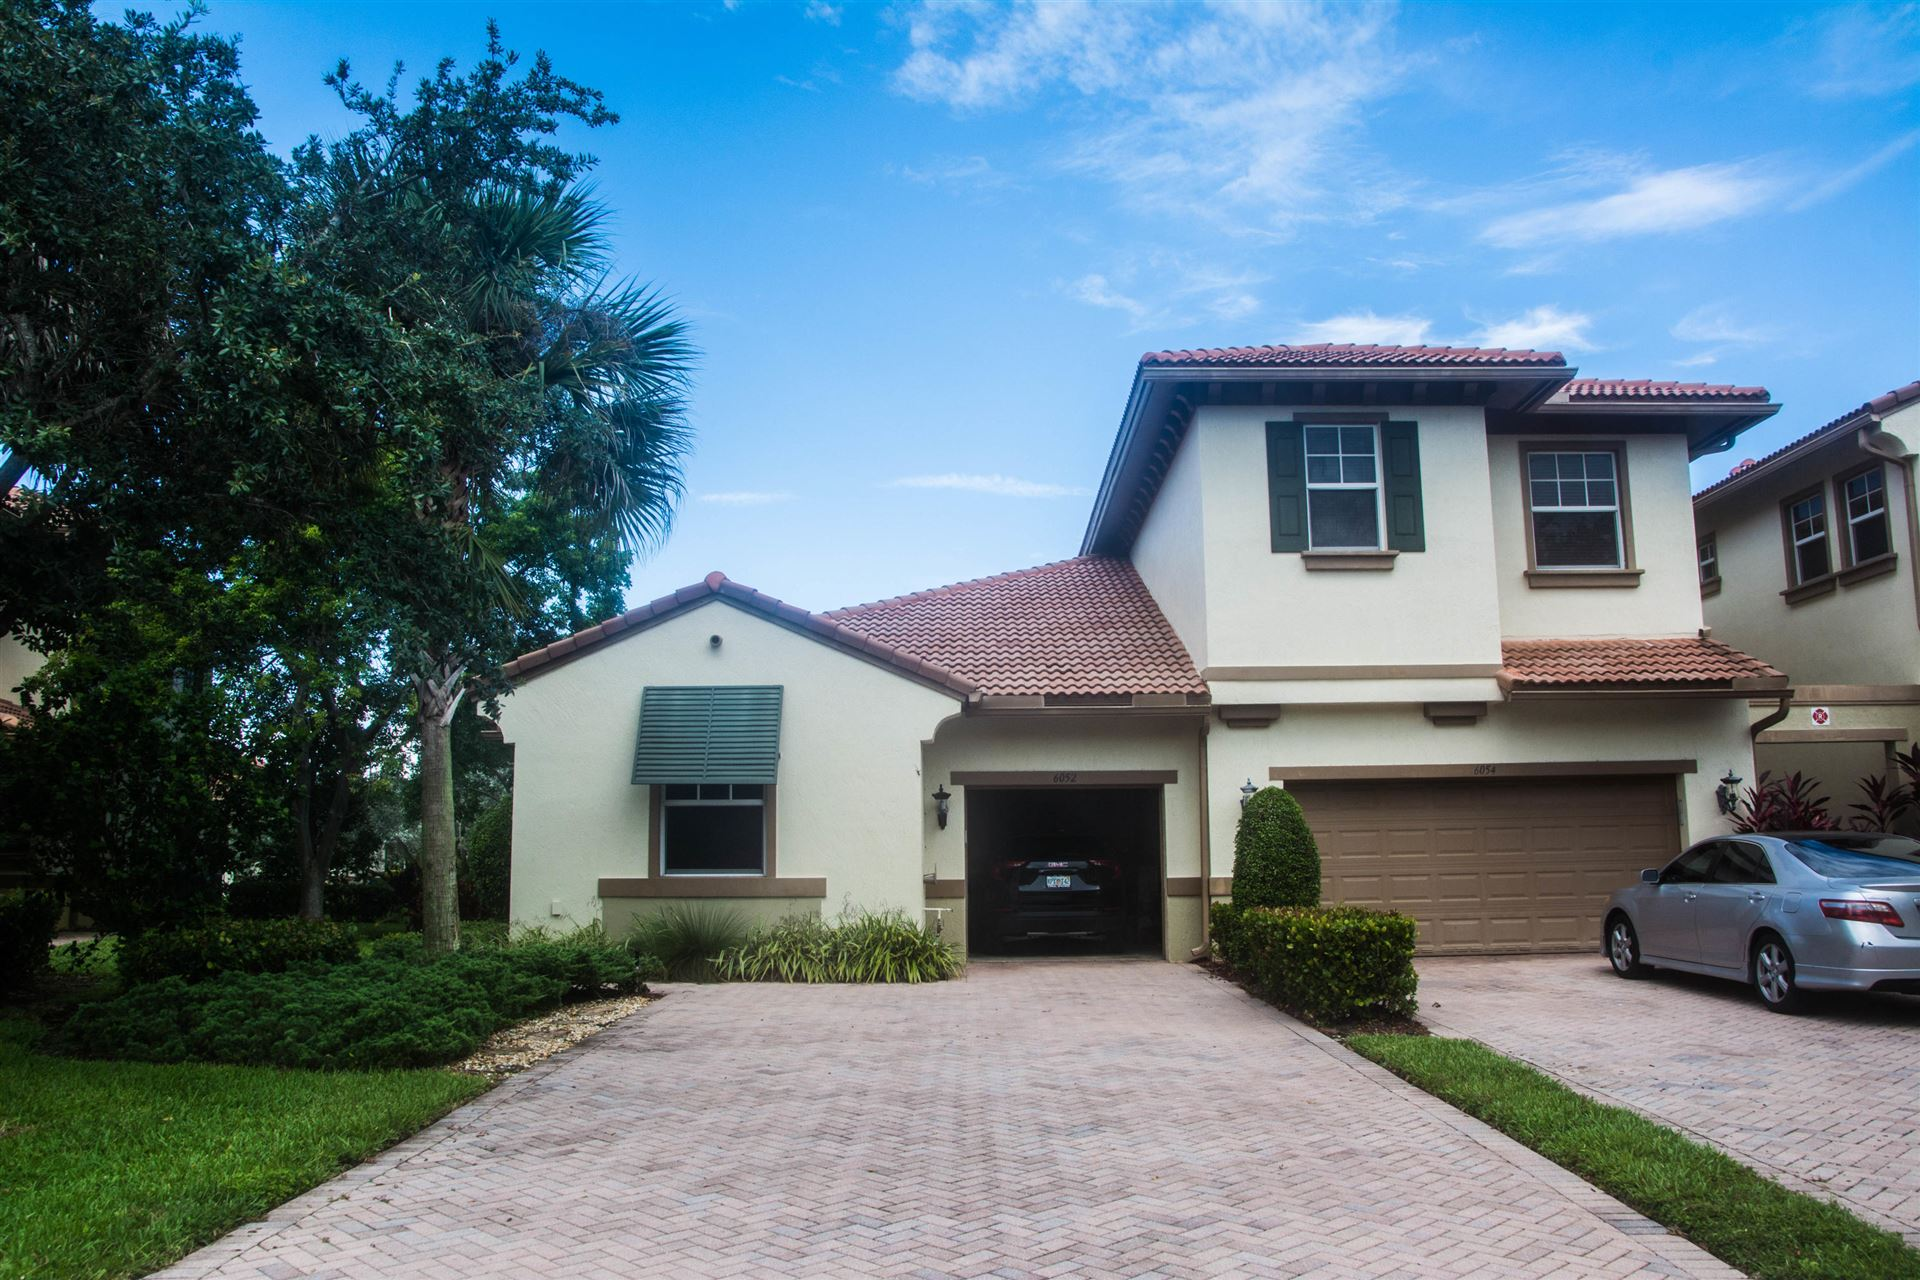 6052 NW 116 Drive, Coral Springs, FL 33076 - #: RX-10645135